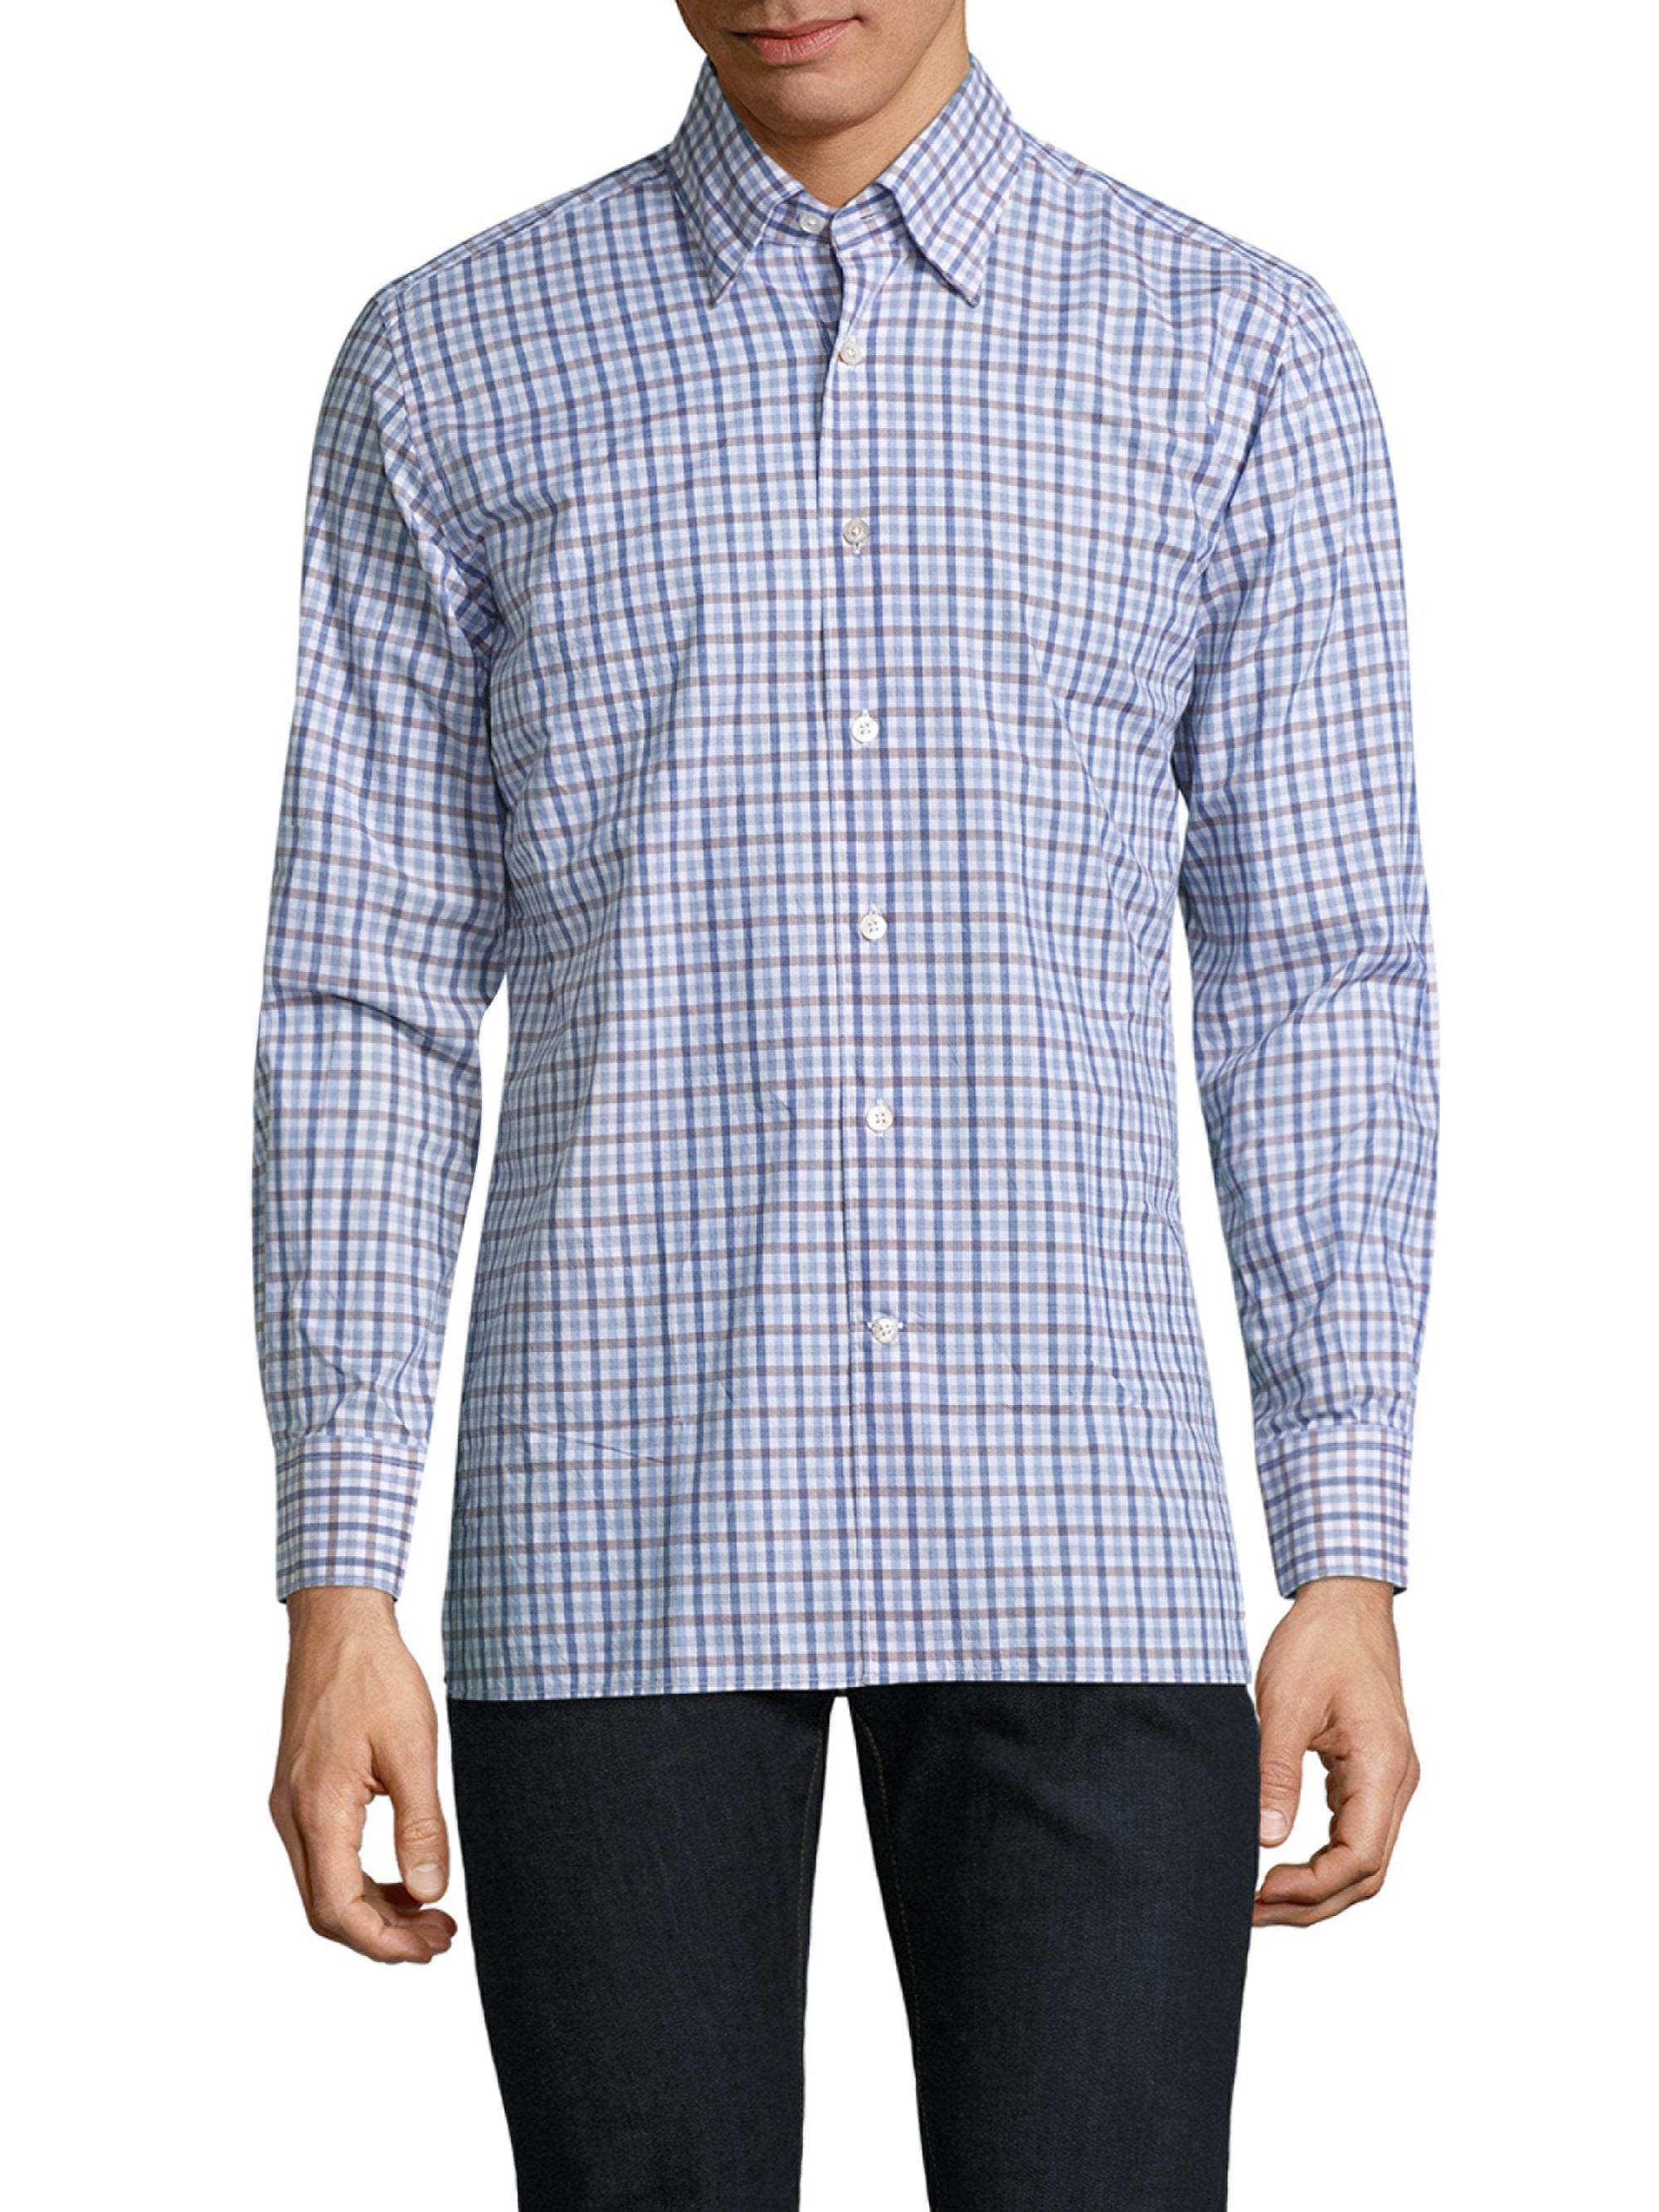 Canali Gingham Casual Button Down Shirt In Blue For Men Lyst